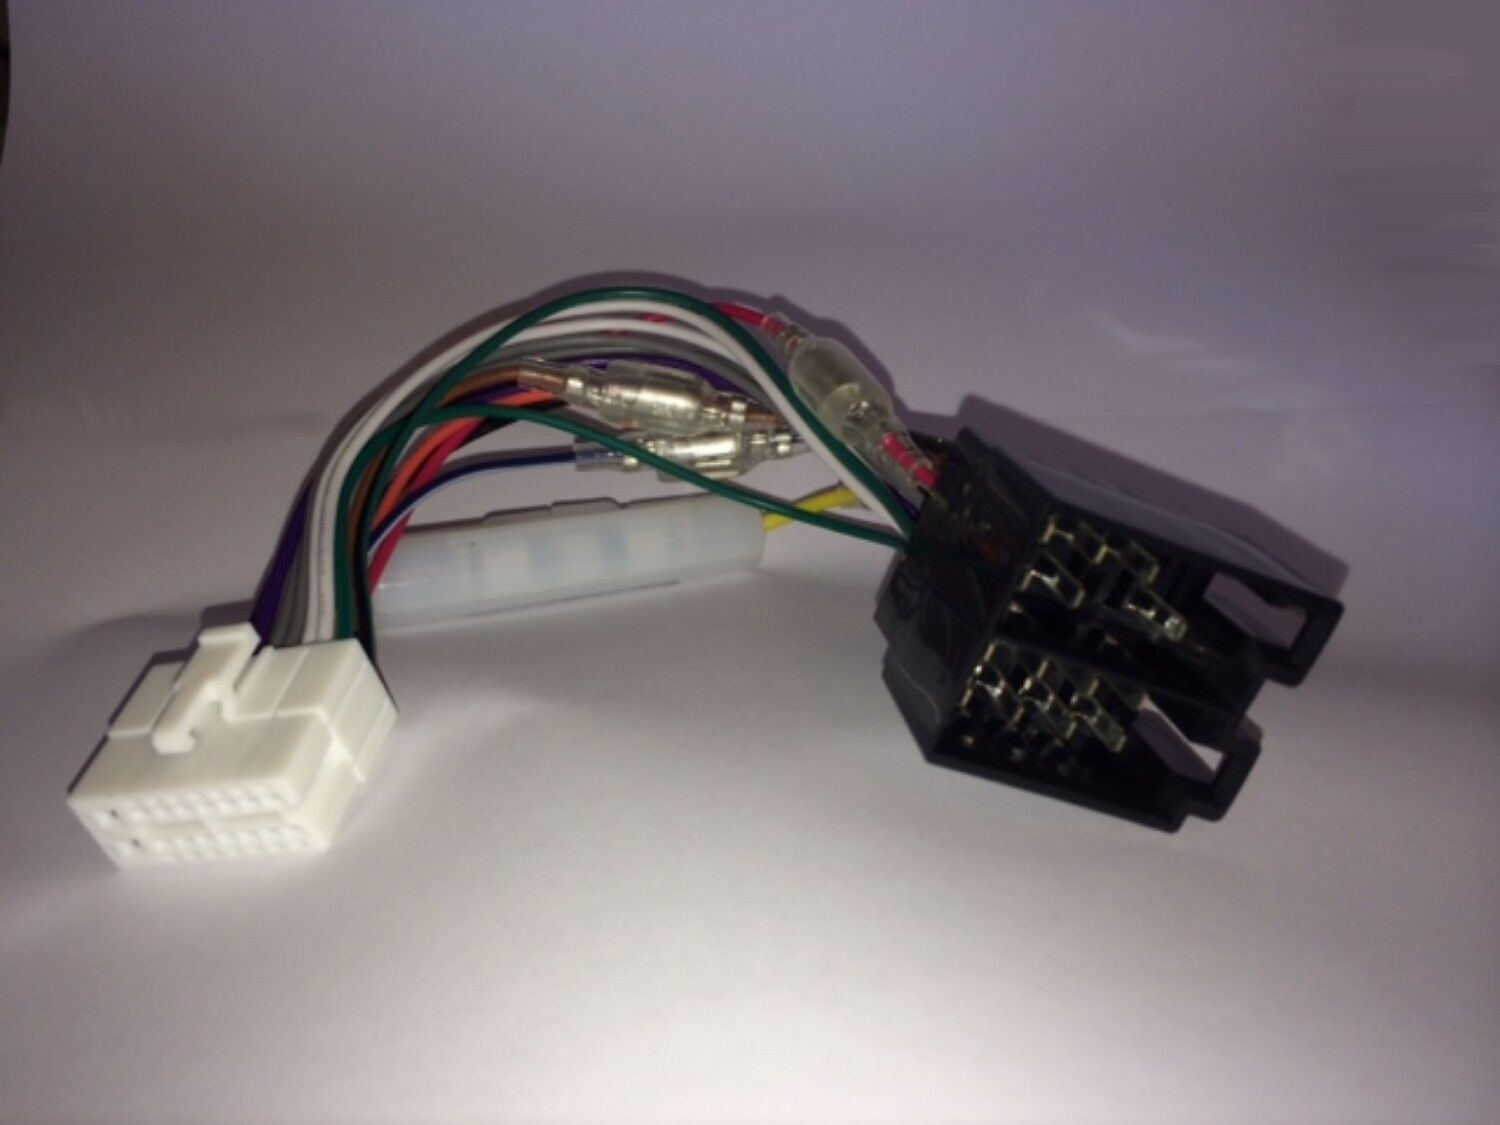 Clarion M3170 Wiring Harness Diagram Auto Electrical Marine Stereo Radio Free Download Vrx765vd Vrx755vd Manual